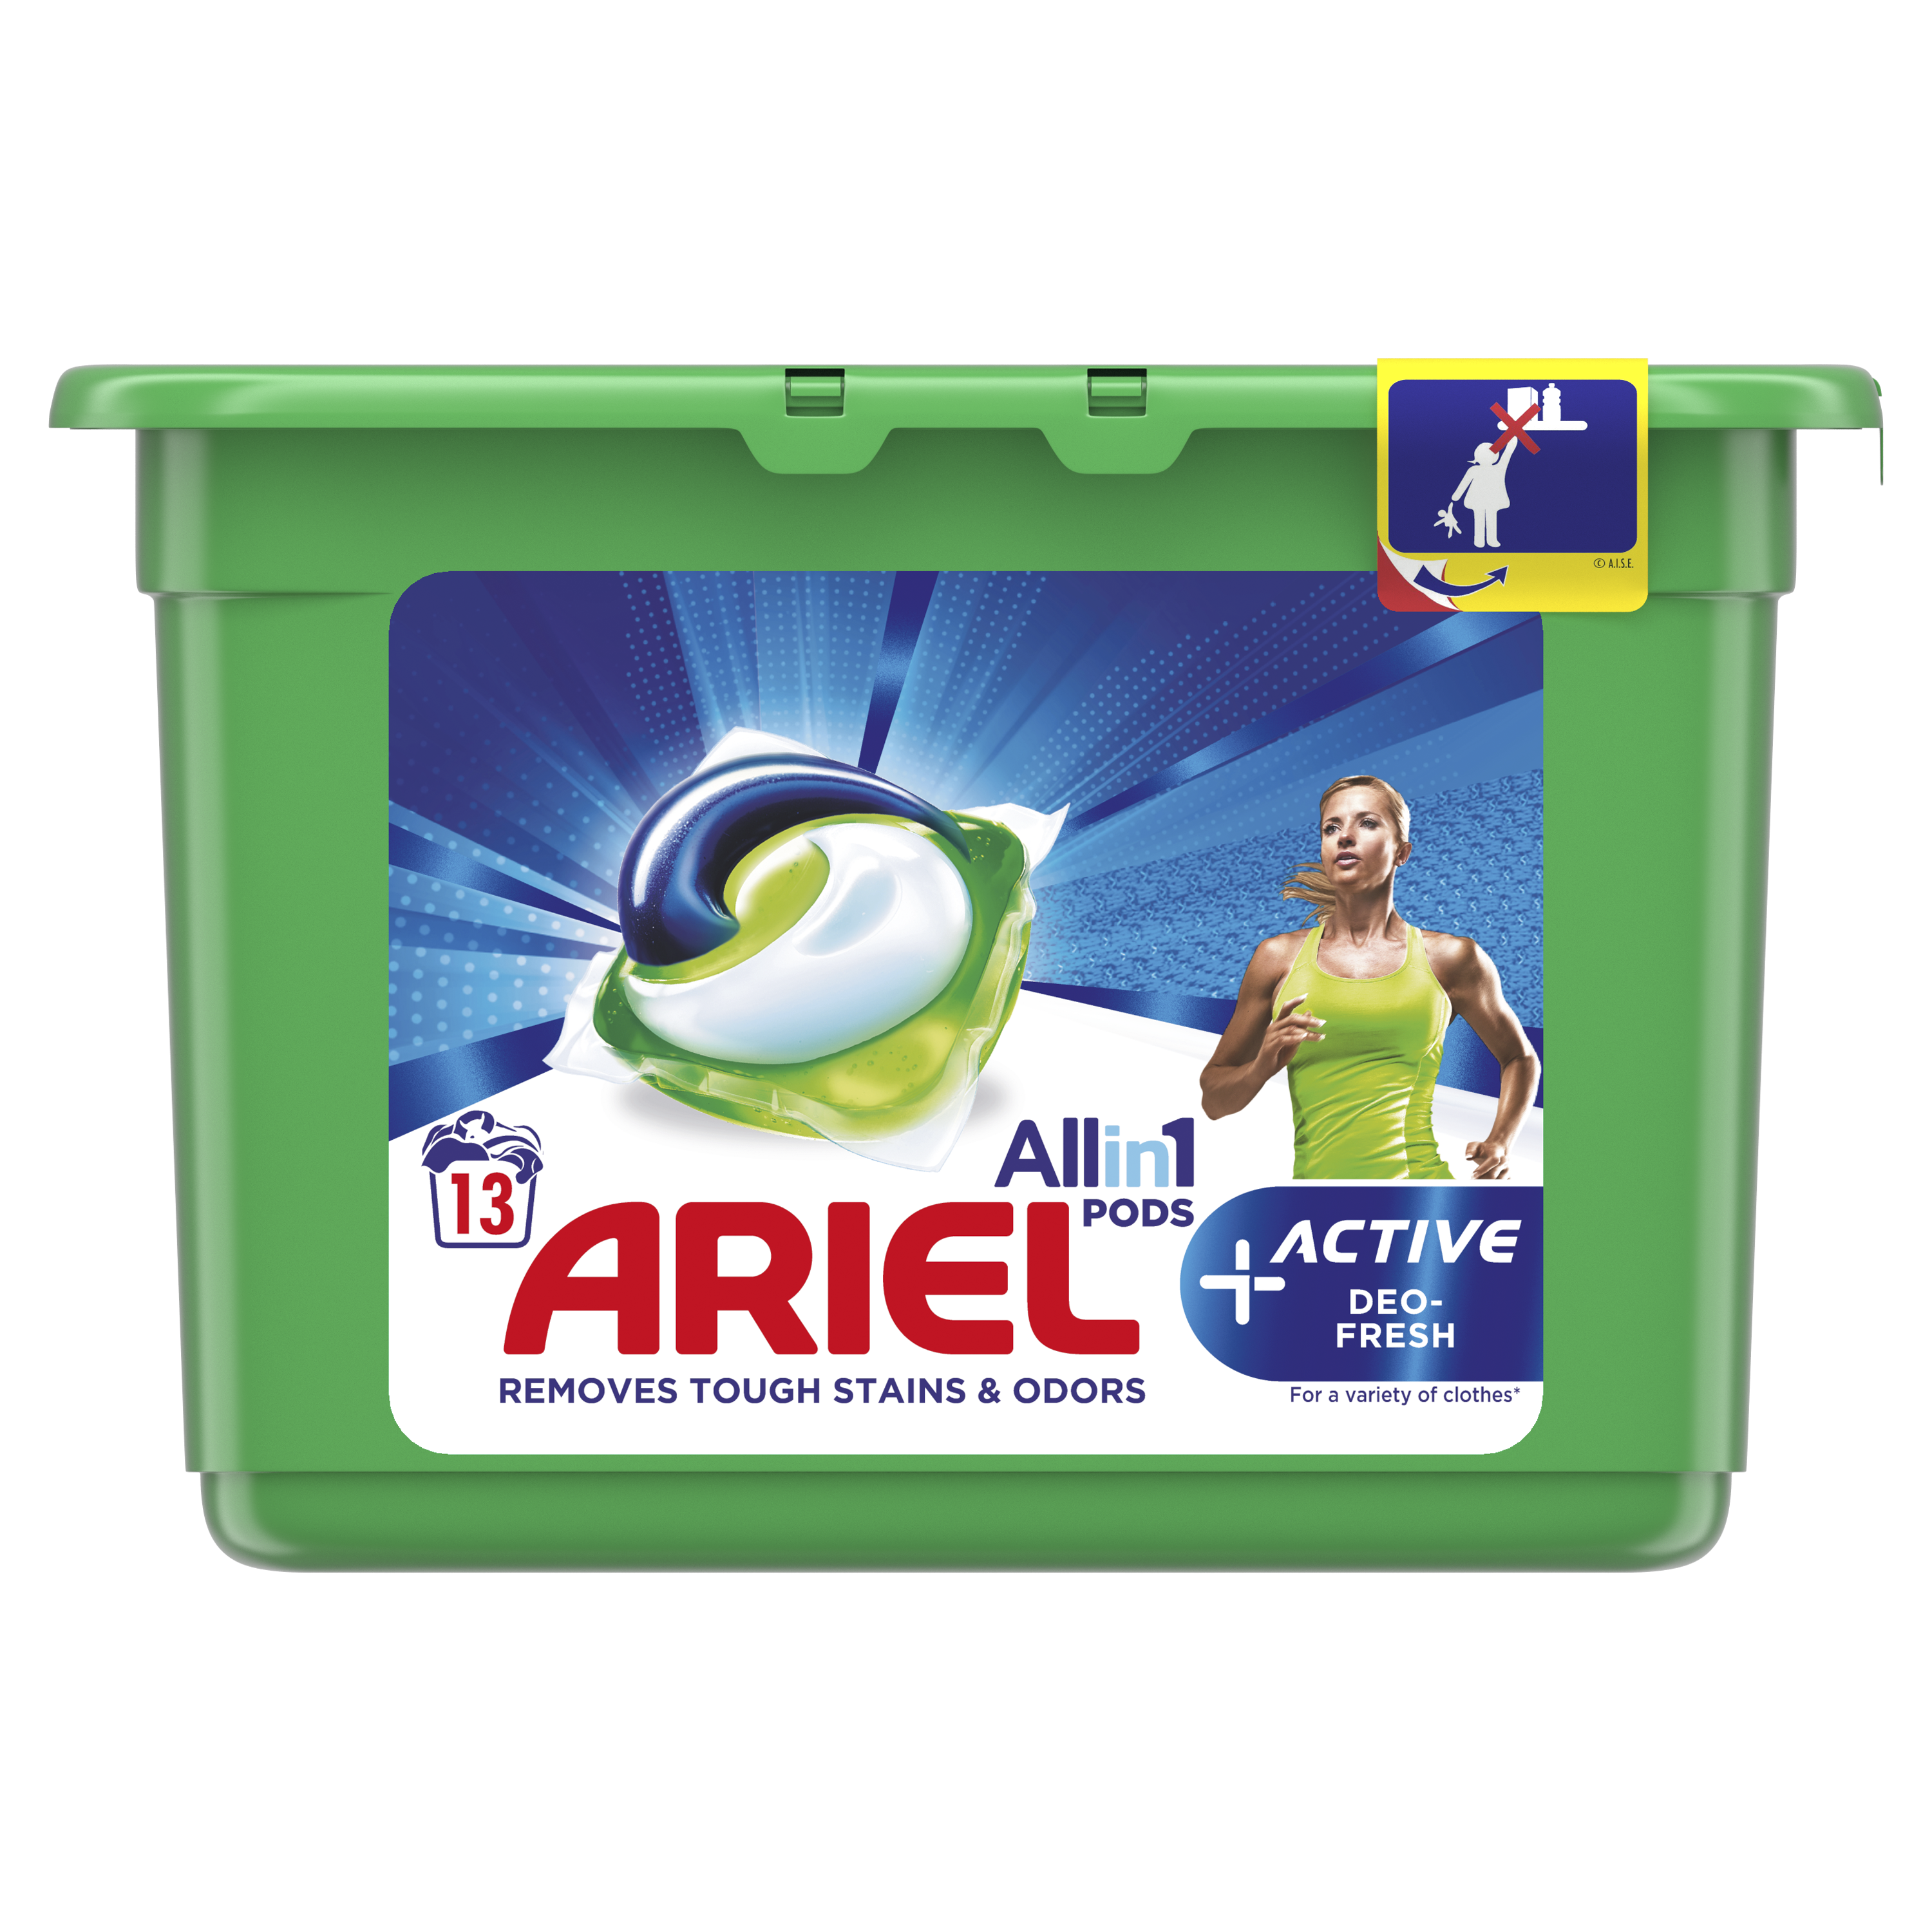 Ariel Active Deo Fresh kapsuly 13ks